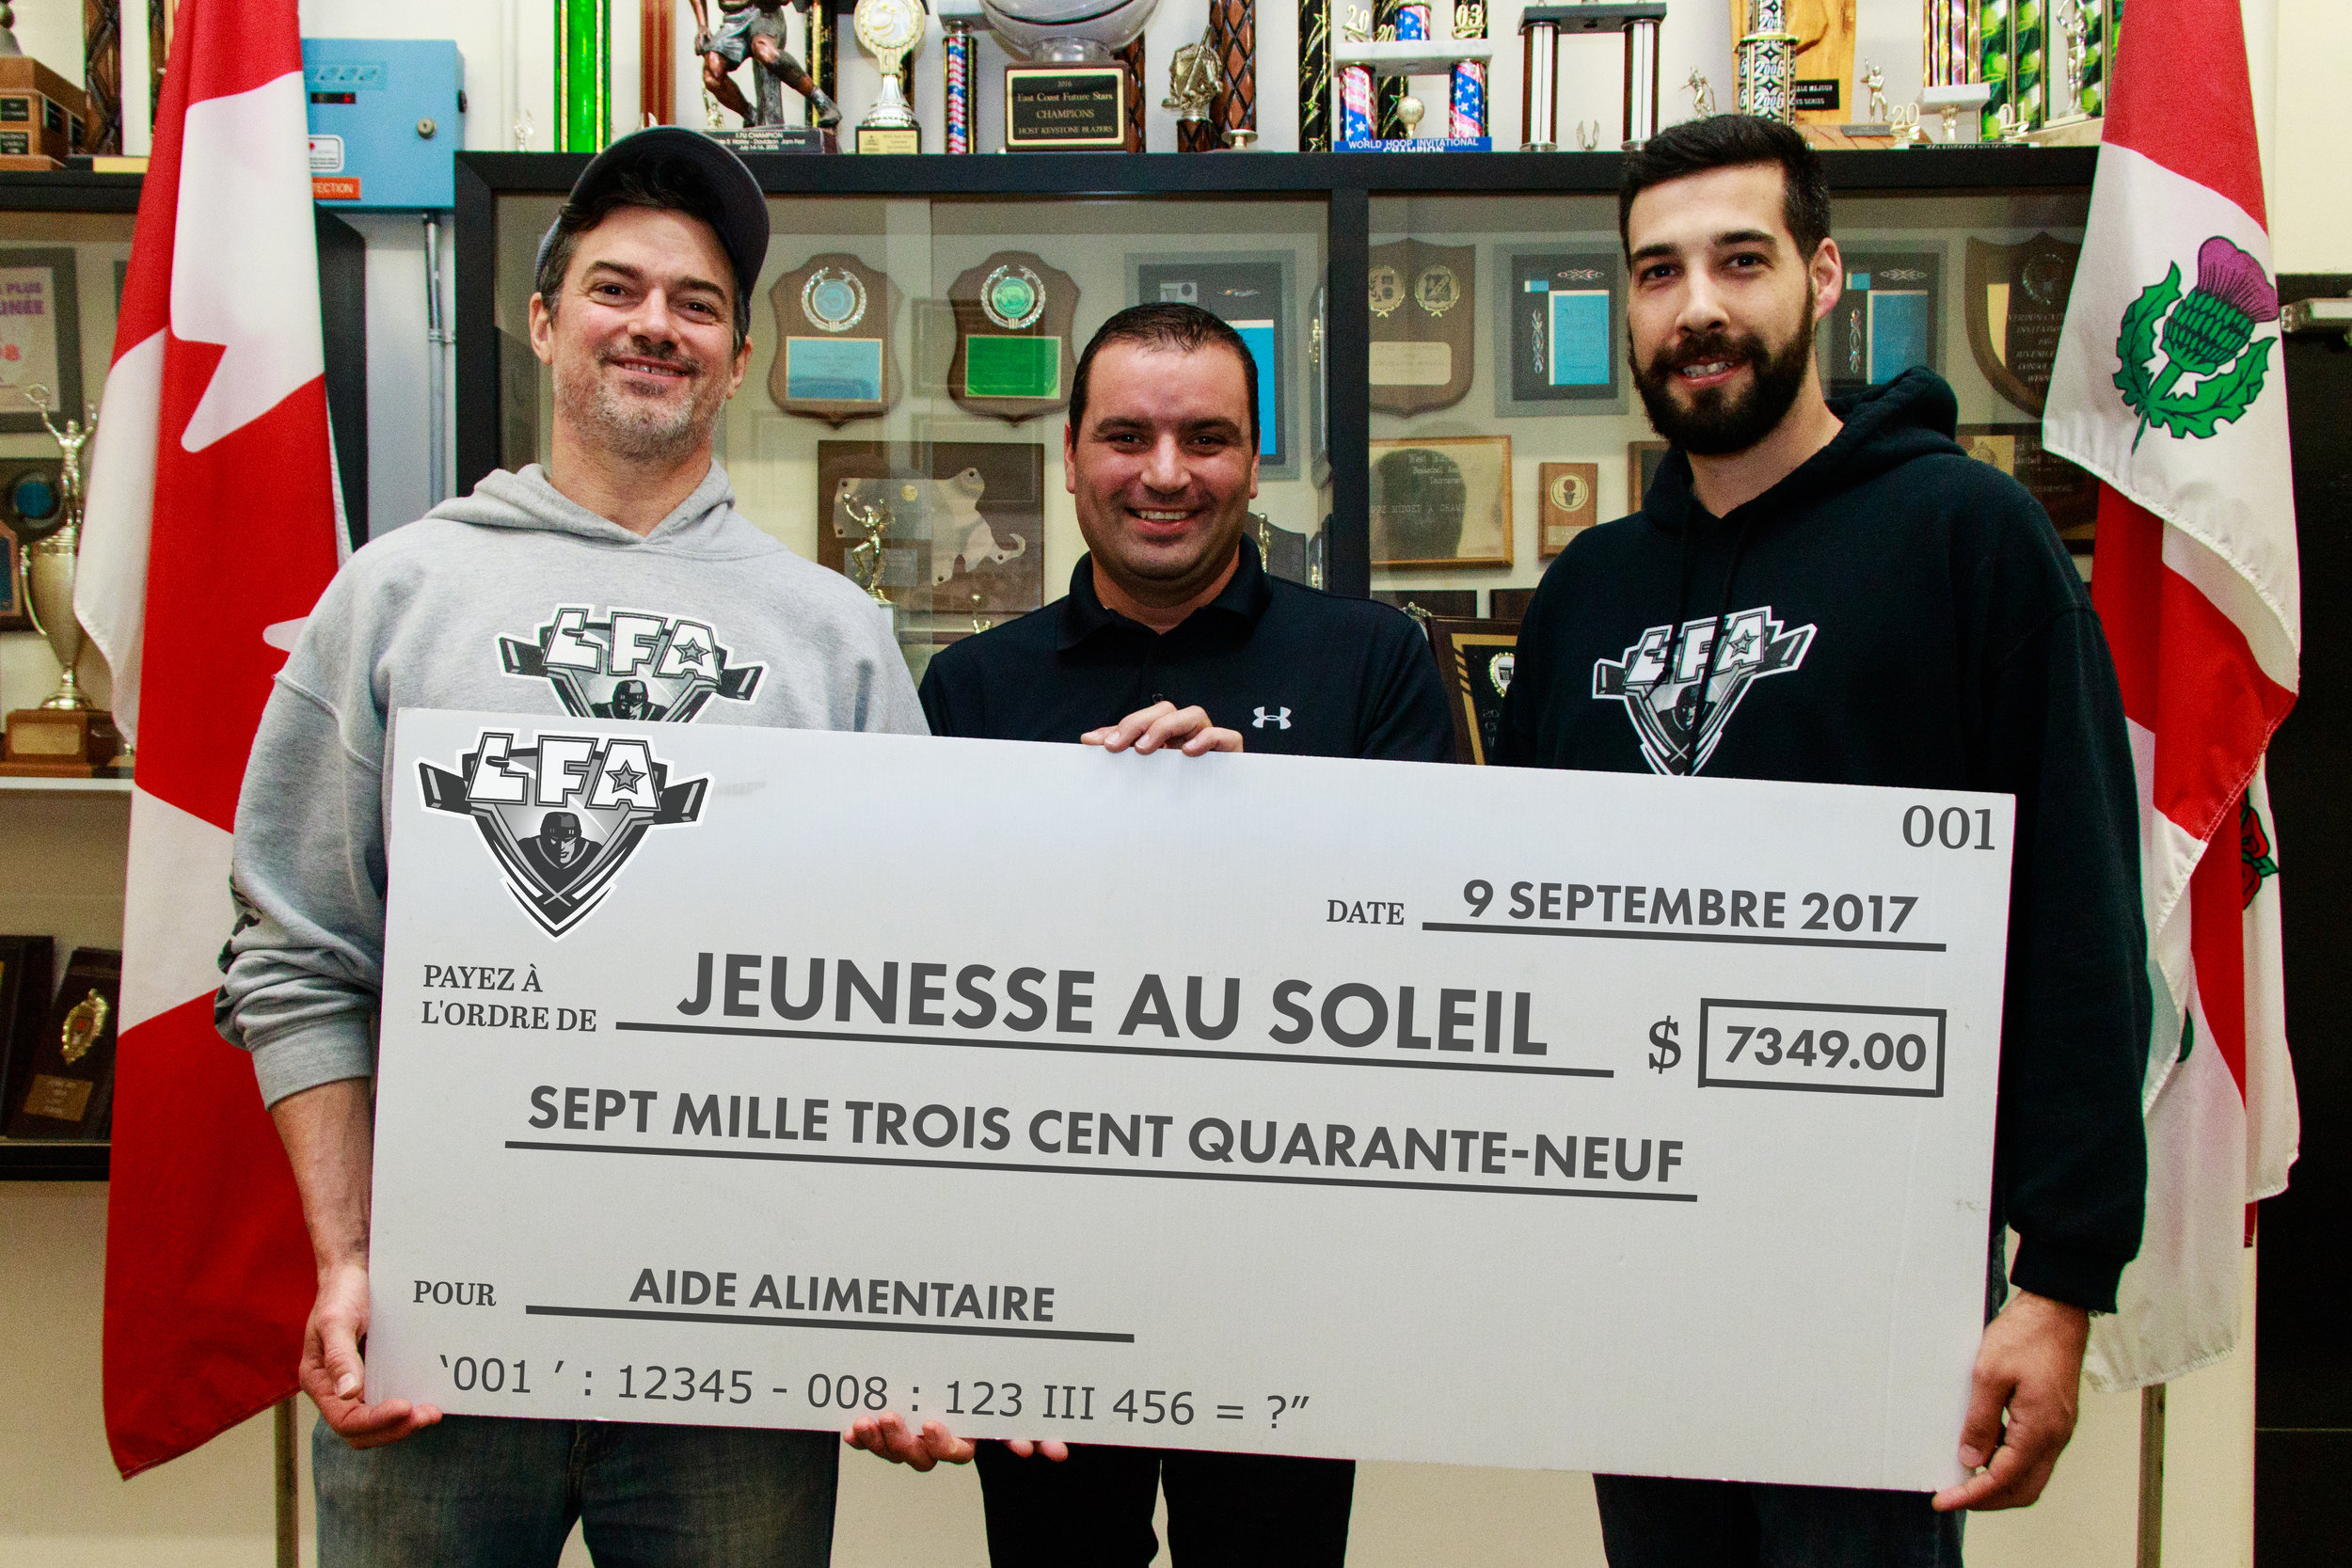 MONEY RAISED FOR THE SUN YOUTH FOOD BANK DURING THE LFA'S SUMMER CHAMPIONSHIP GAME AUGUST 27TH (FROM LEFT TO RIGHT) THE CEO OF THE LFA JEAN-FRANCOIS DESBOIS WITH HEILO GALEGO FROM SUN YOUTH AND JACOB POLIQUIN THE DIRECTOR OF COMMUNICATIONS OF THE LEAGUE ,(PHOTO JOE FLEMINGS),